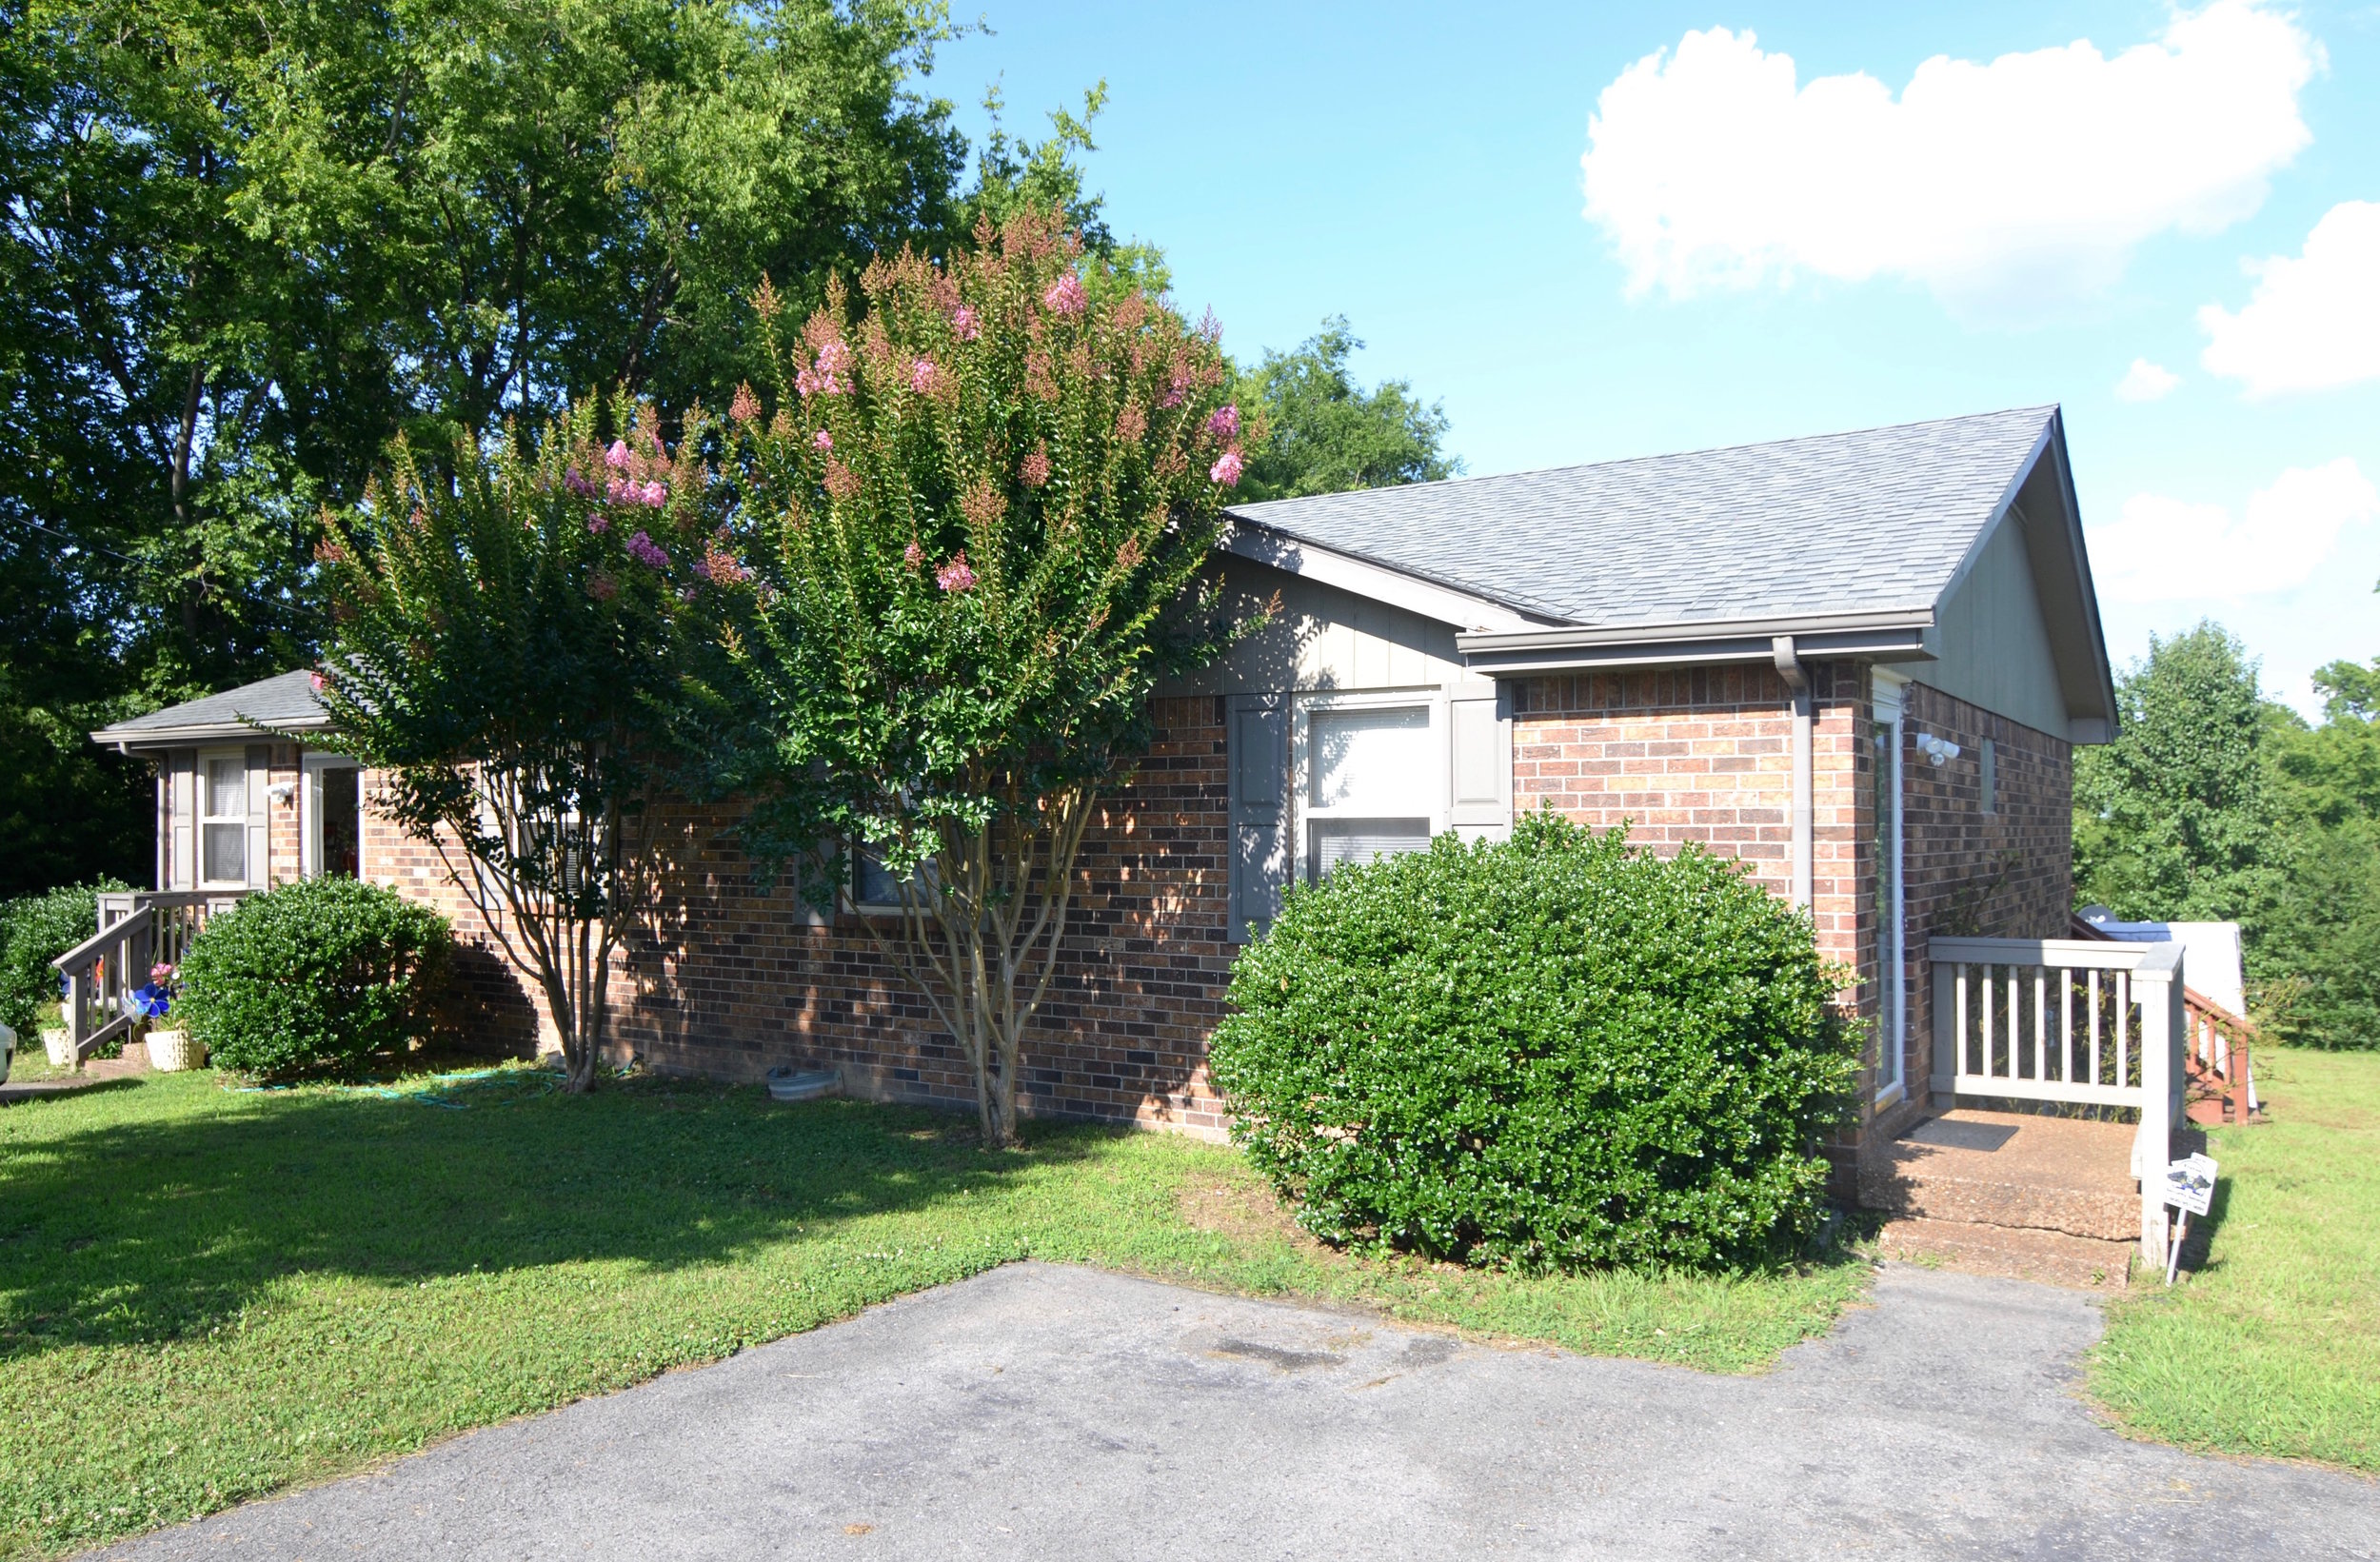 1405 /1407 RENTED MADISON: 1405/07 Indian Woods: Duplex: 2 Br, 1 Ba